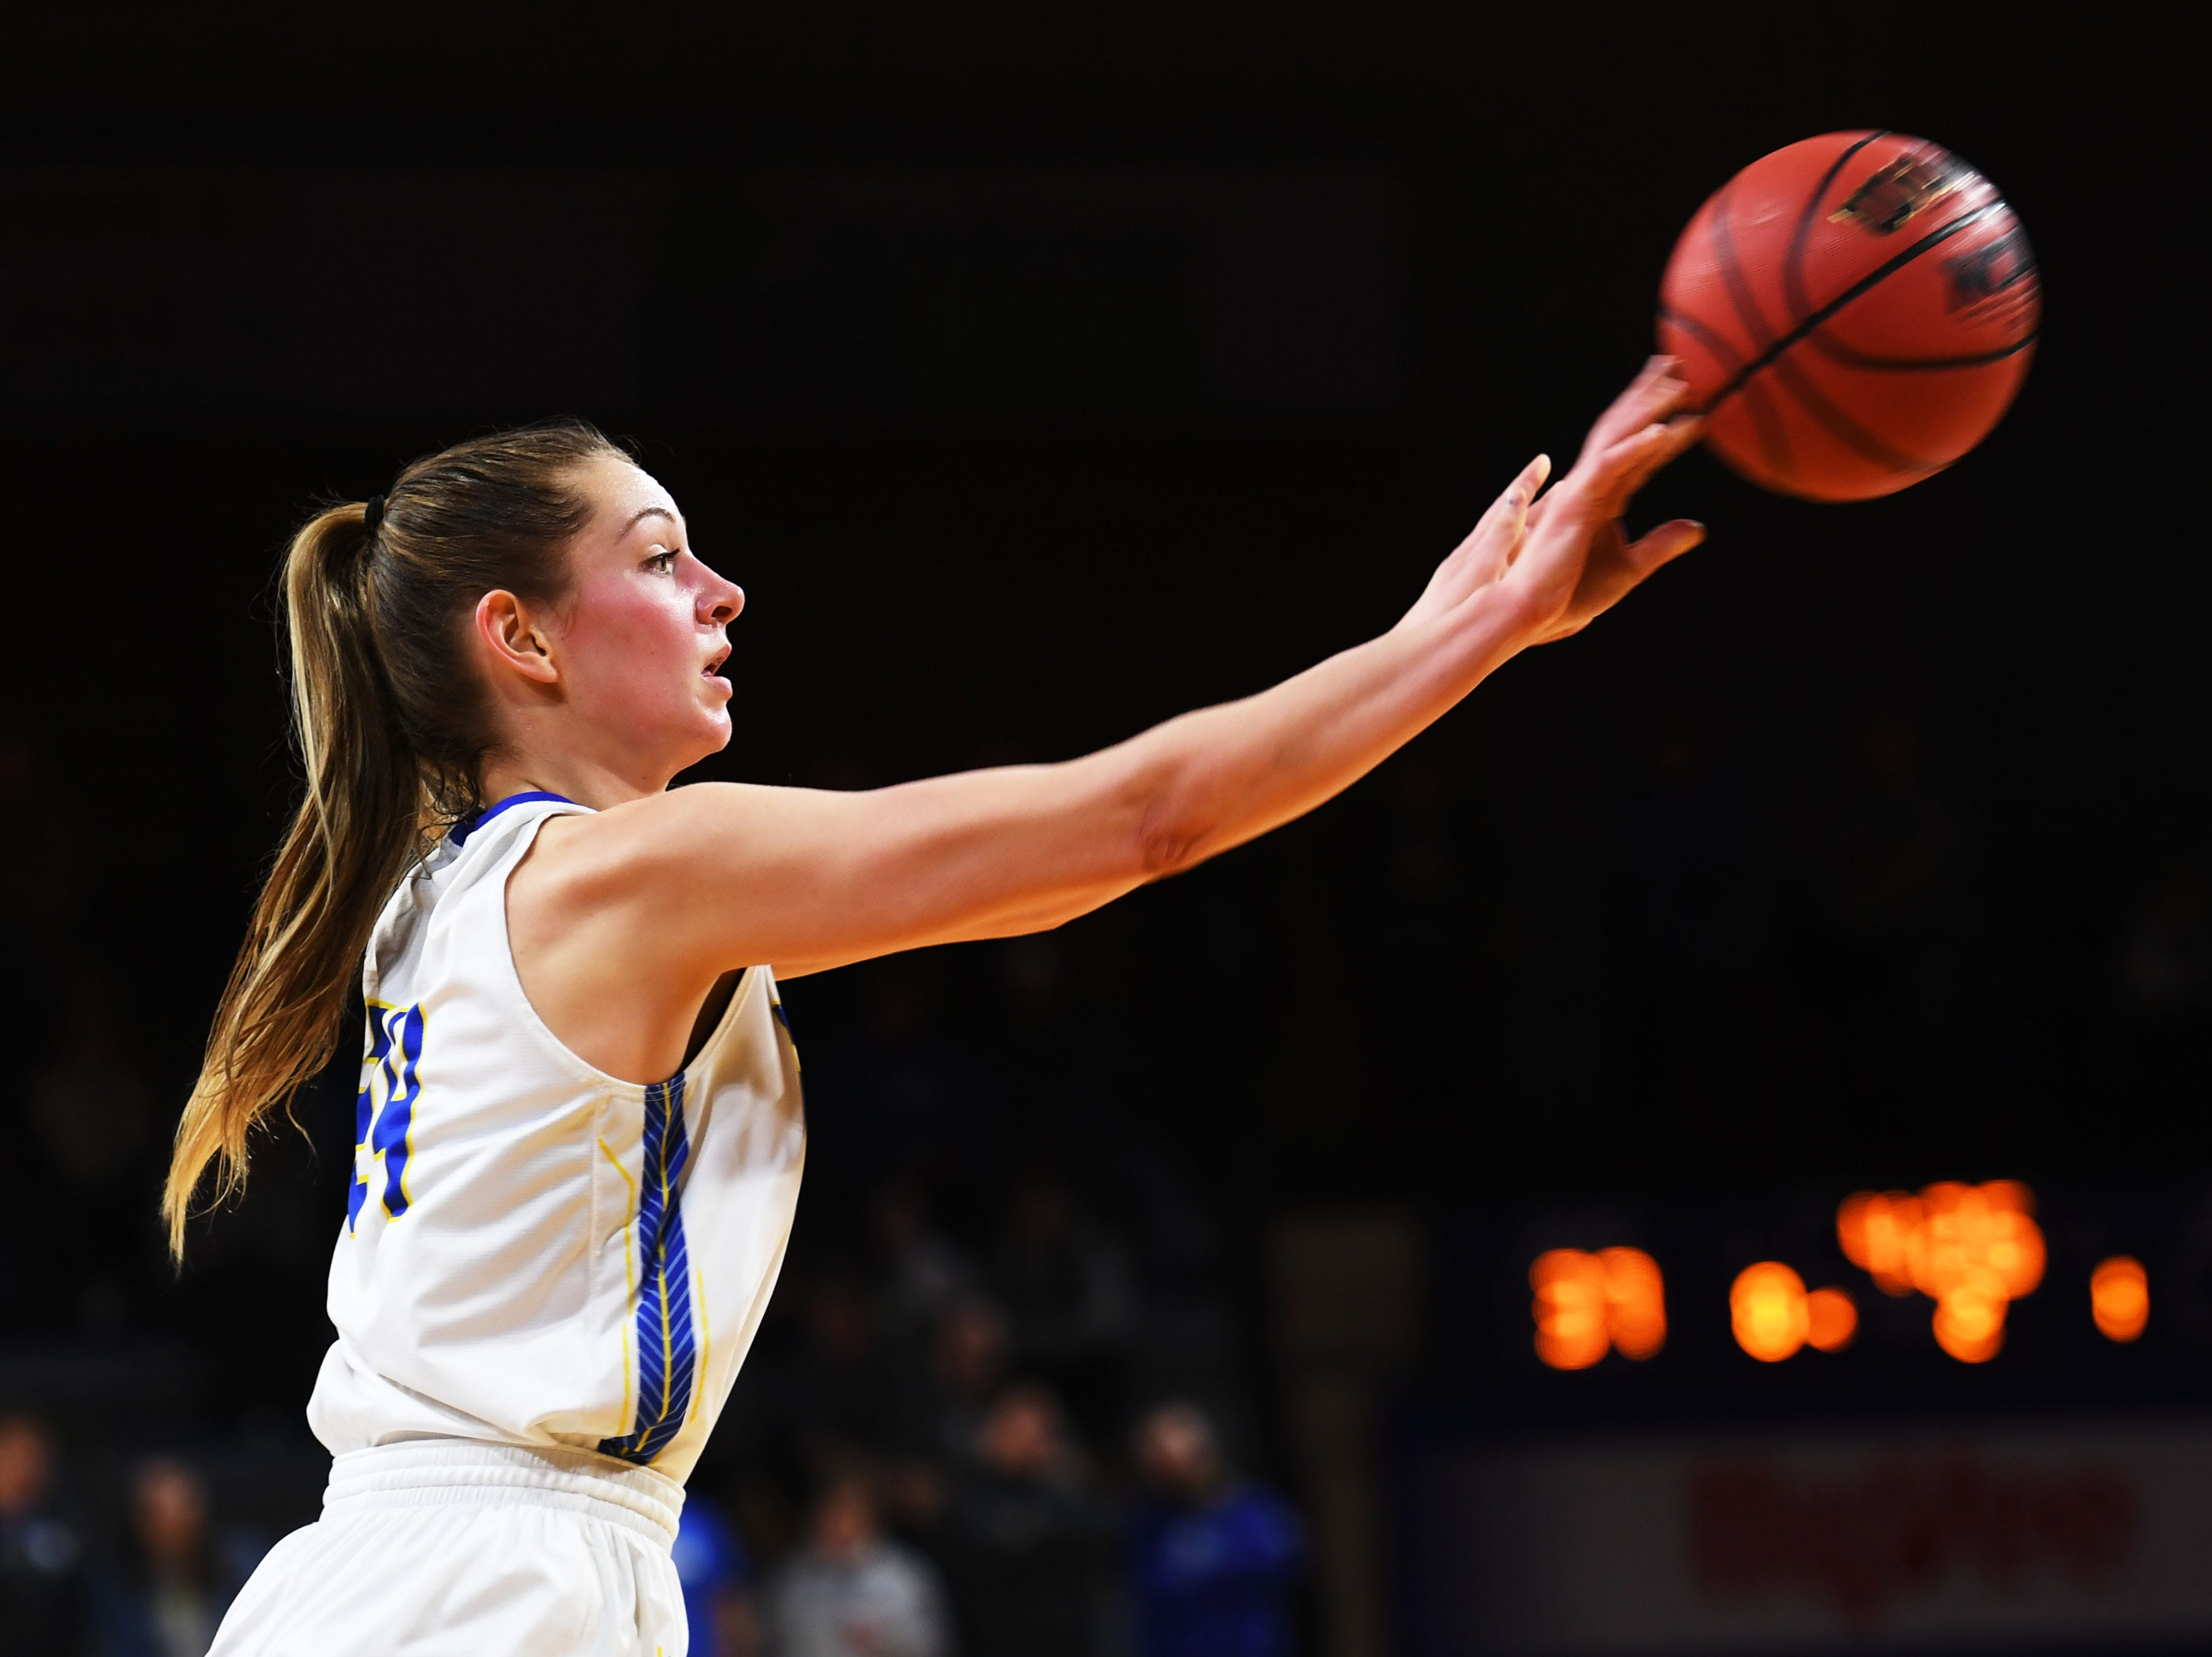 SDSU's Tagyn Larson passes the ball during the game against NDSU Wednesday, Jan. 23, at Frost Arena in Brookings.